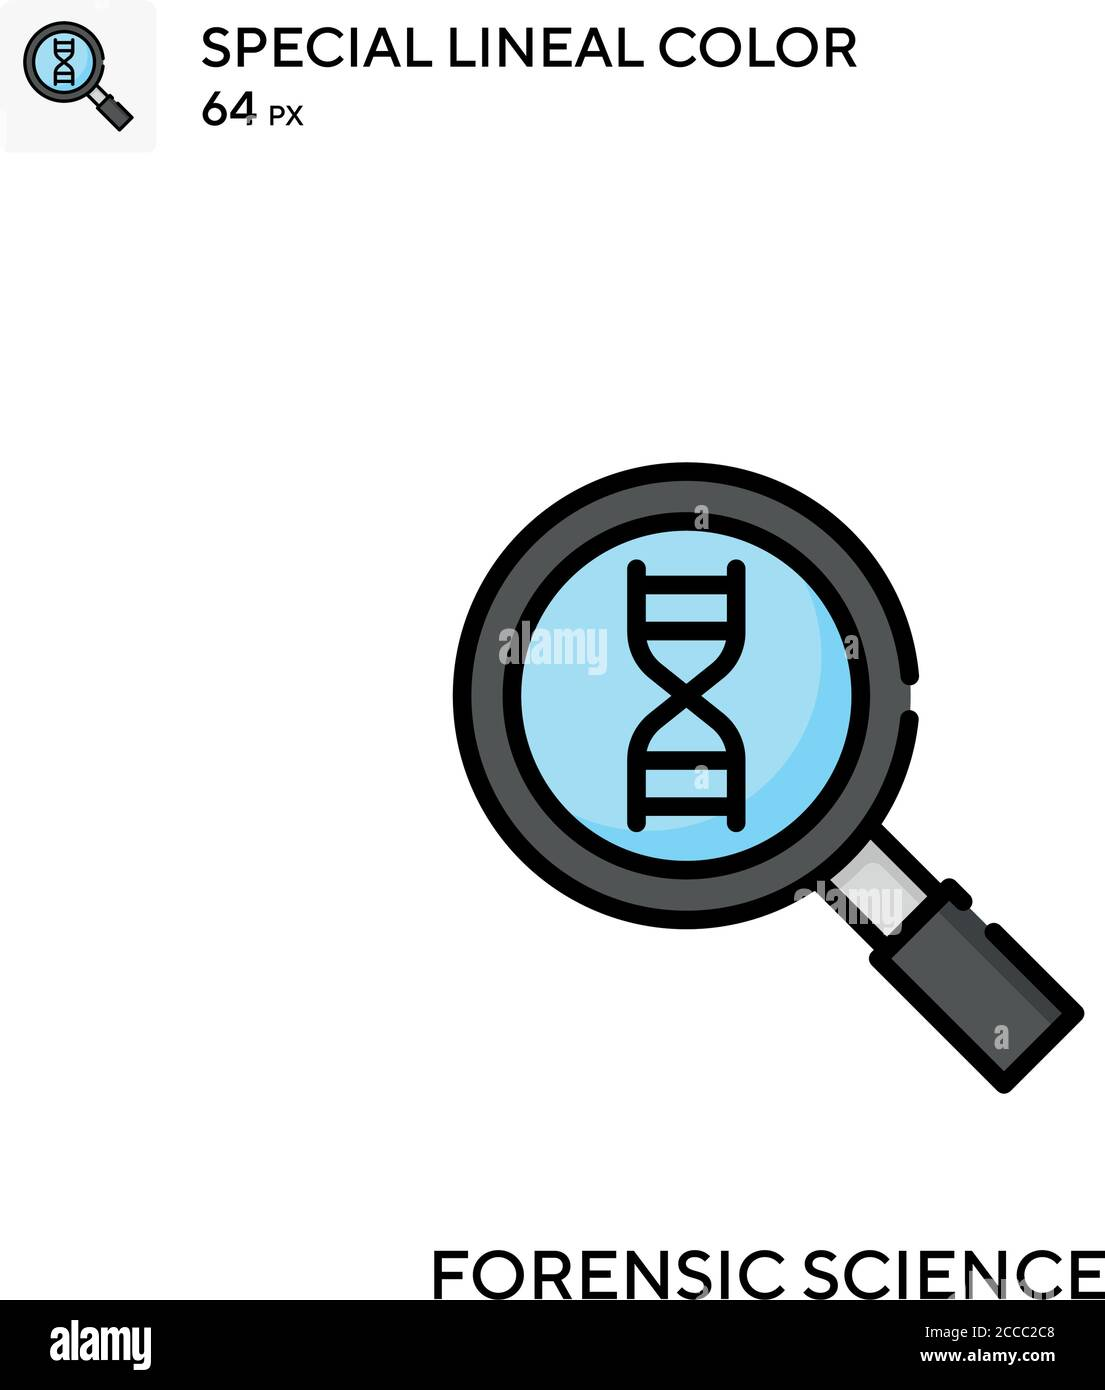 Forensic Science Stock Vector Images Alamy